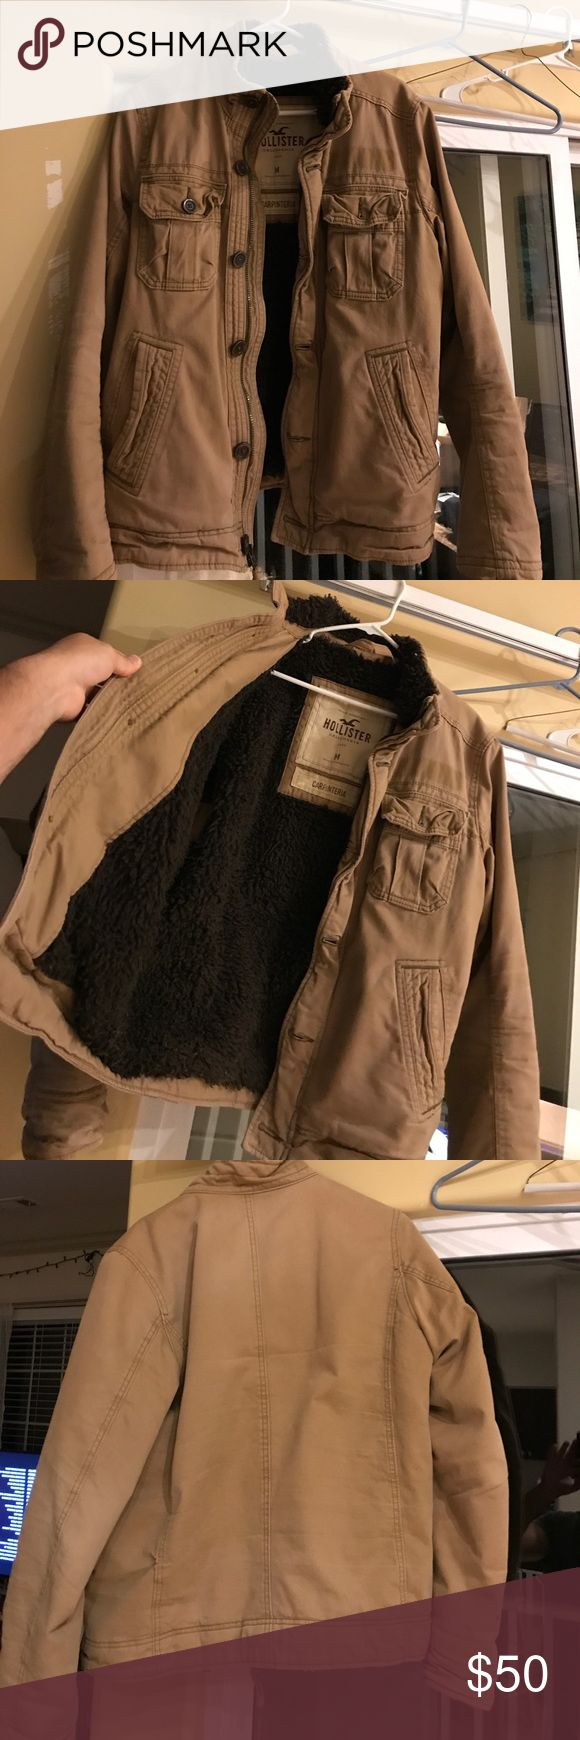 """Hollister Medium """"Carpinteria"""" jacket. Very Used. I'm cleaning out the closet and found this jacket I haven't warm in a year or so. Very used but still has some life left in it. I bought this Hollister jacket a few years back. Original price was at the time not current because I'm not sure what the current retail is. Hollister Jackets & Coats Bomber & Varsity"""